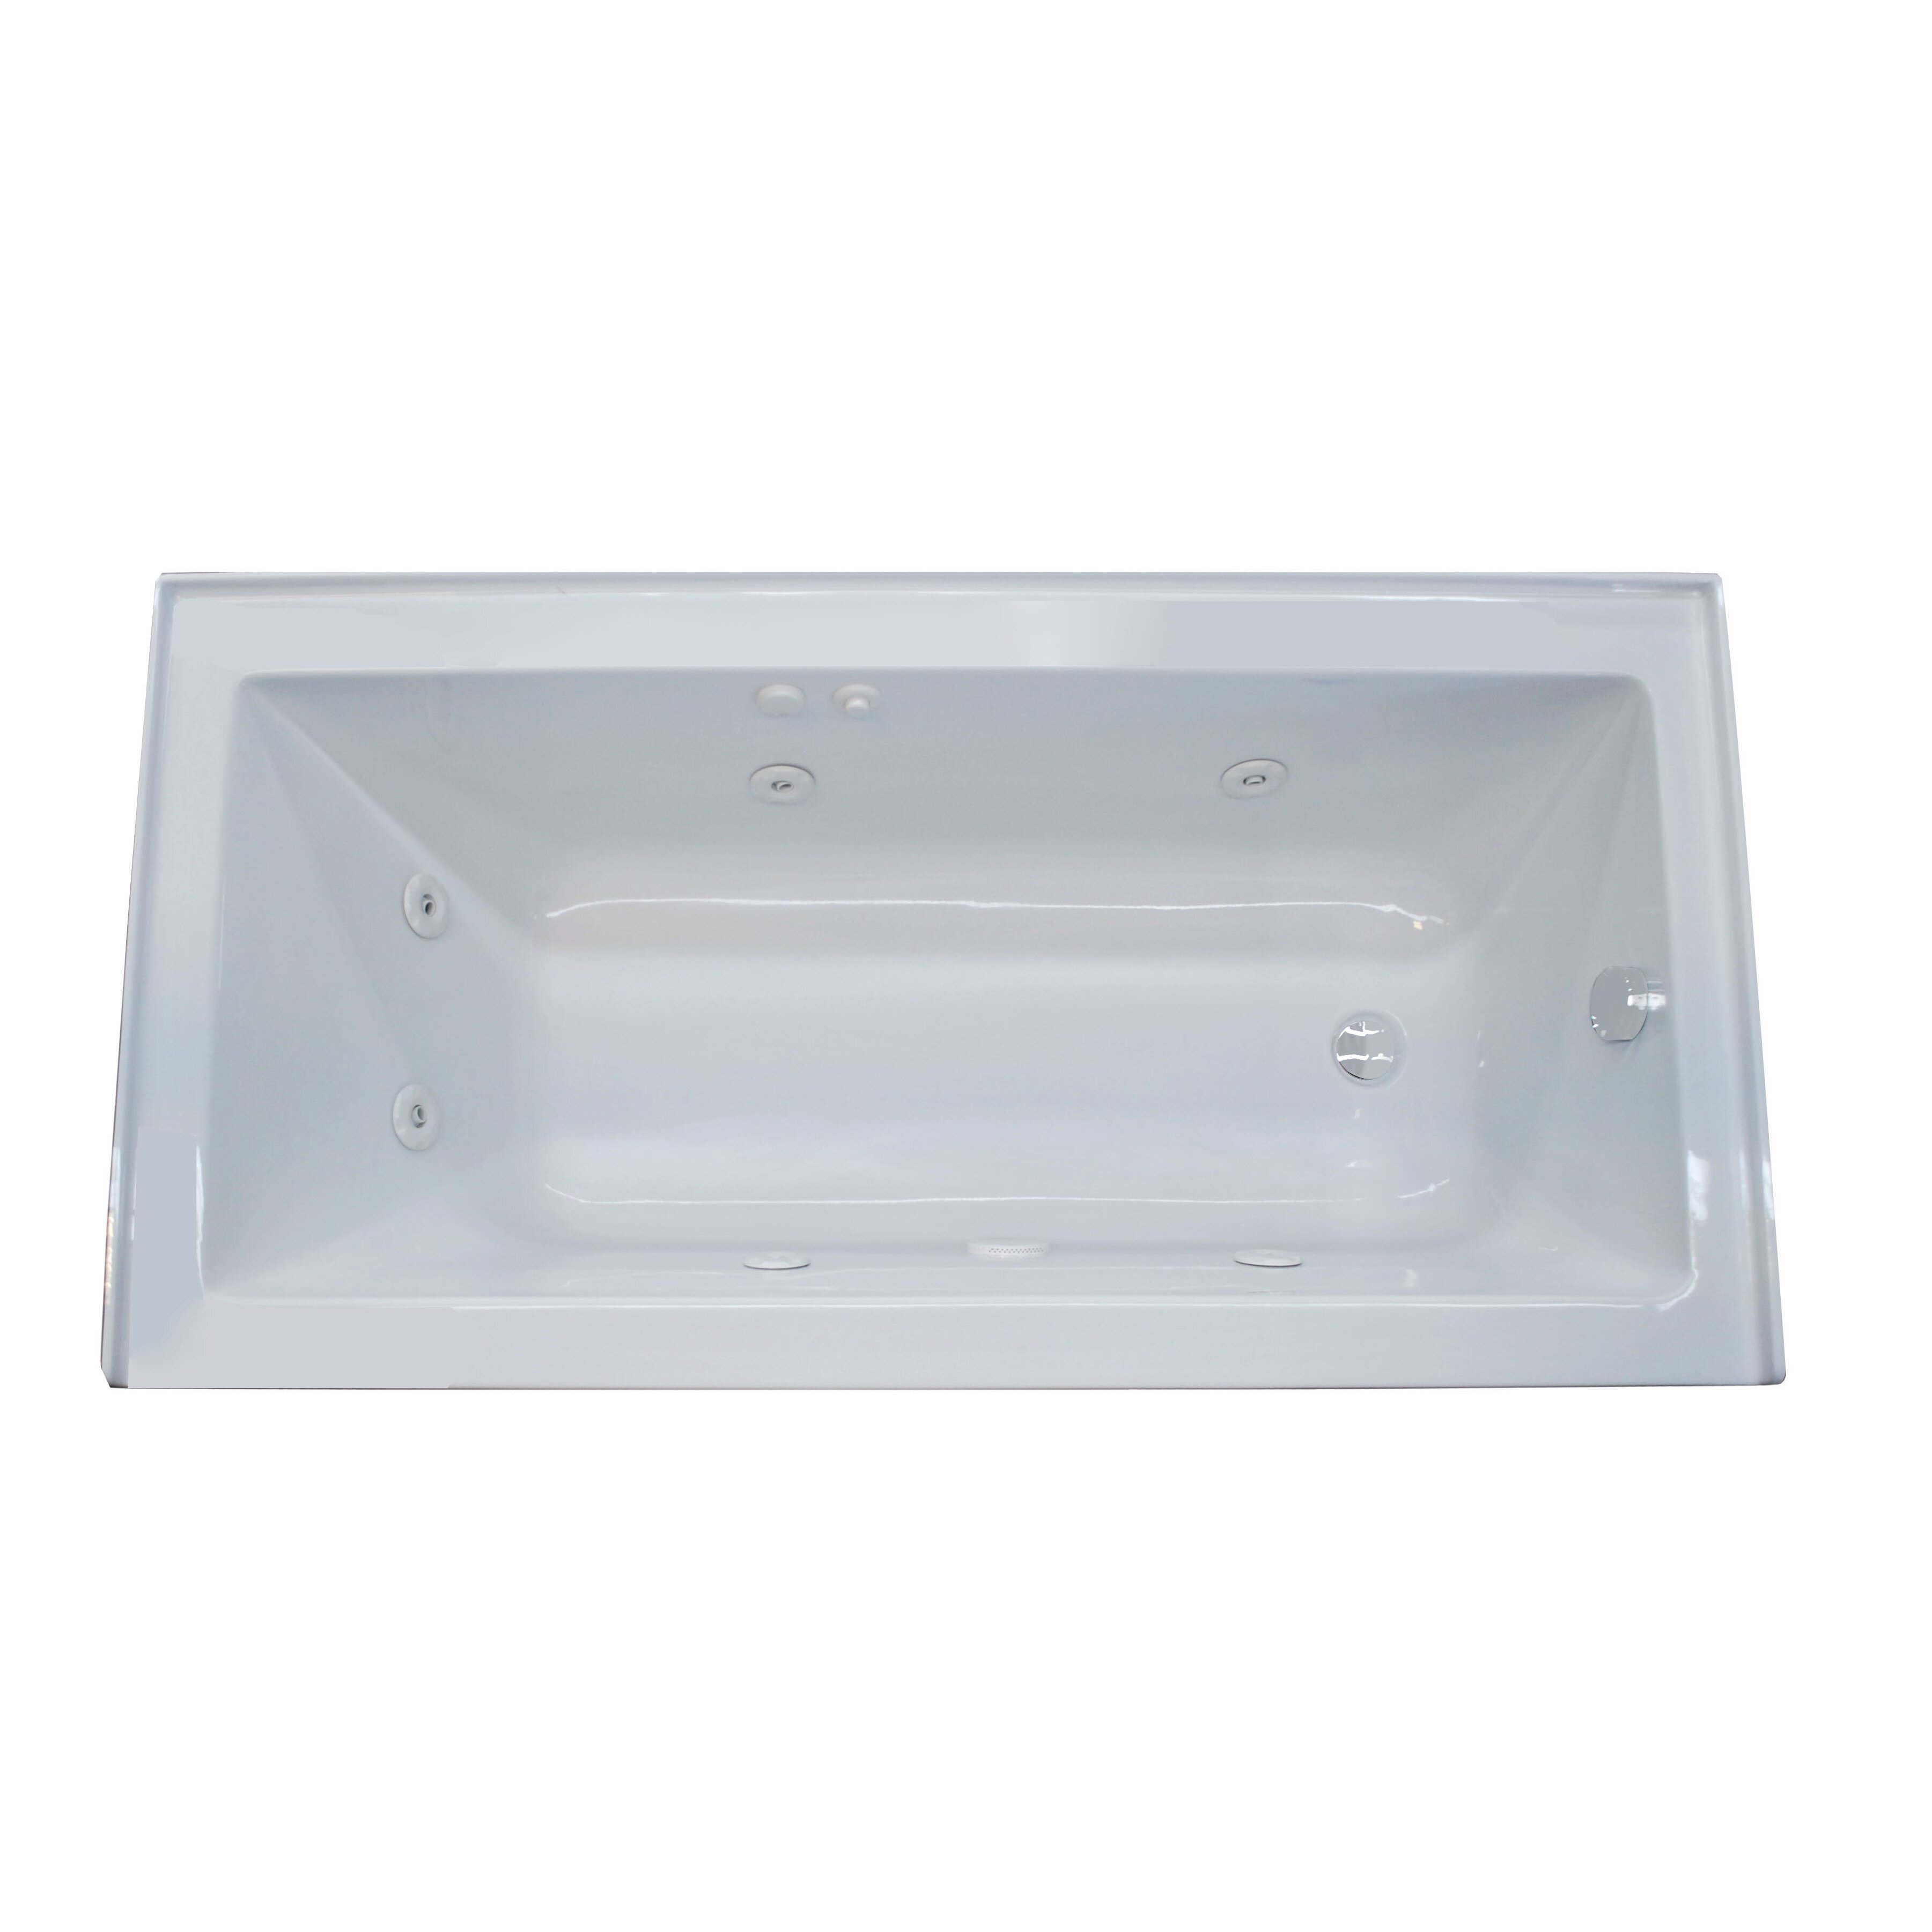 Delighted Fiberglass Bathtub Bottom Crack Repair Inlays Huge Tile Designs Small Bathrooms Solid Bathroom Half Wall Tile Ideas Bathroom Shower Designs Old Bath With Door Elderly RedPictures Of Gray And White Bathroom Ideas Jacuzzi Bathtub Reviews Dogs Cuteness,   Homes